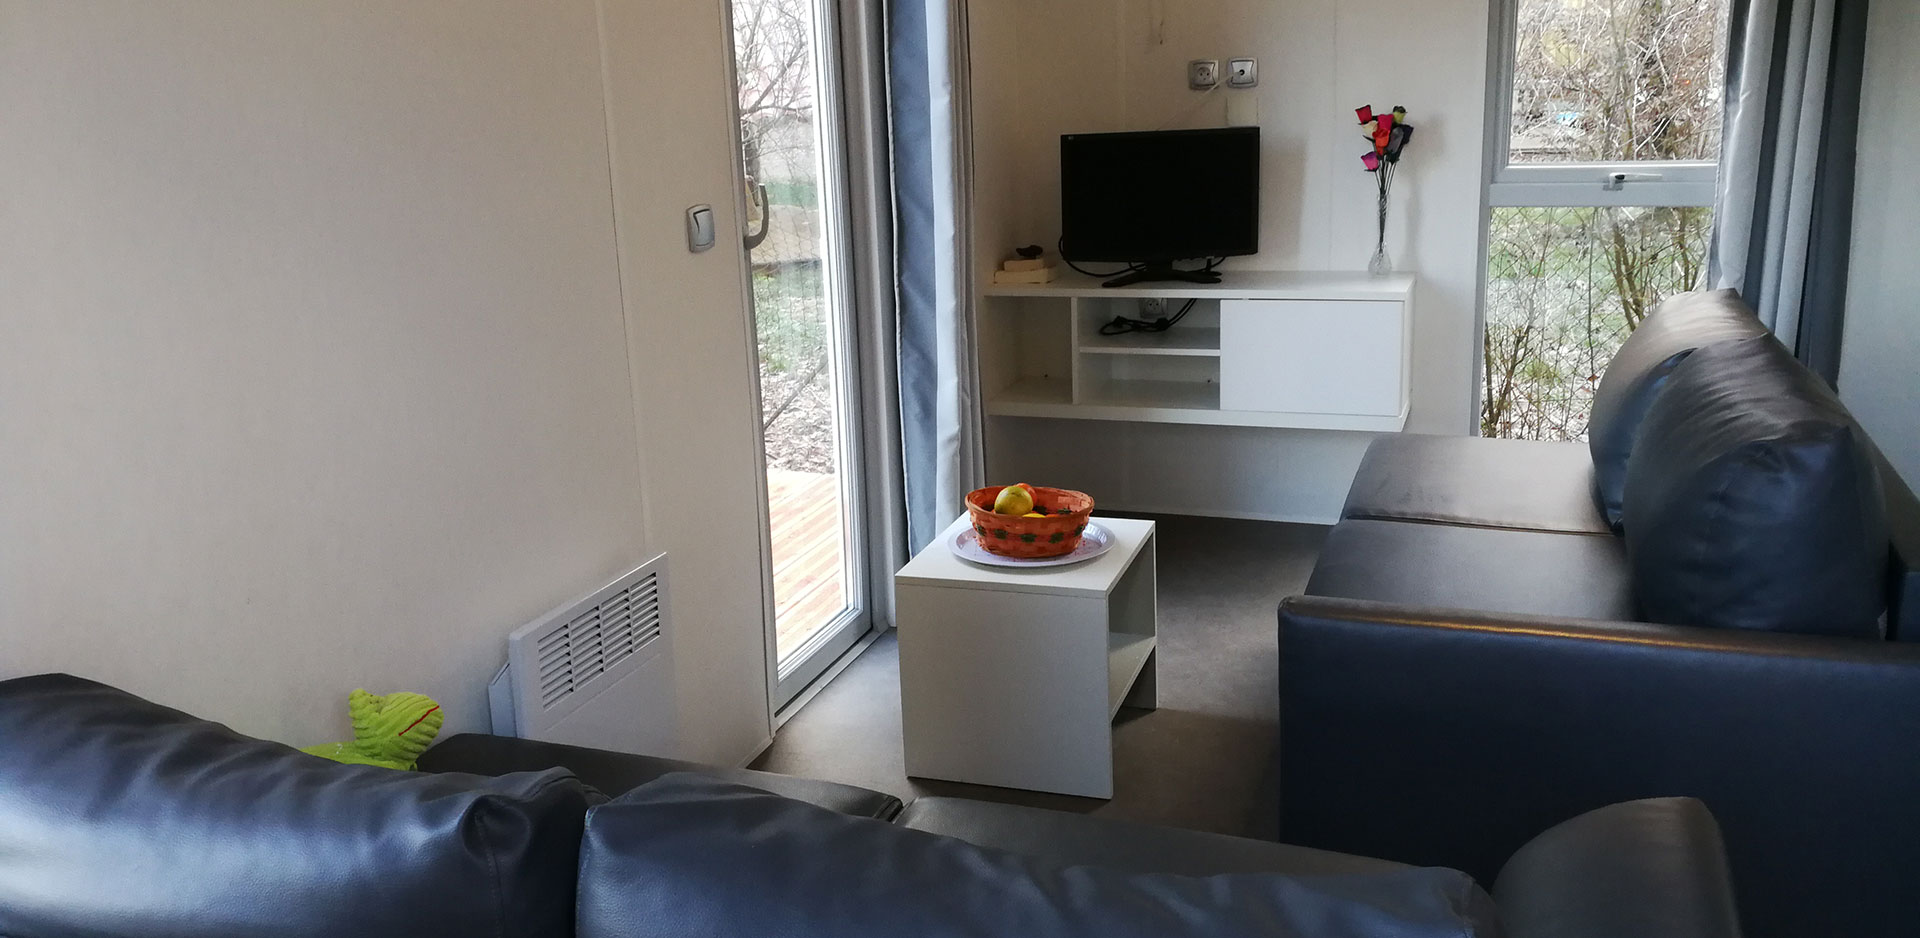 Comfortable mobile home up for rental nearby Colmar